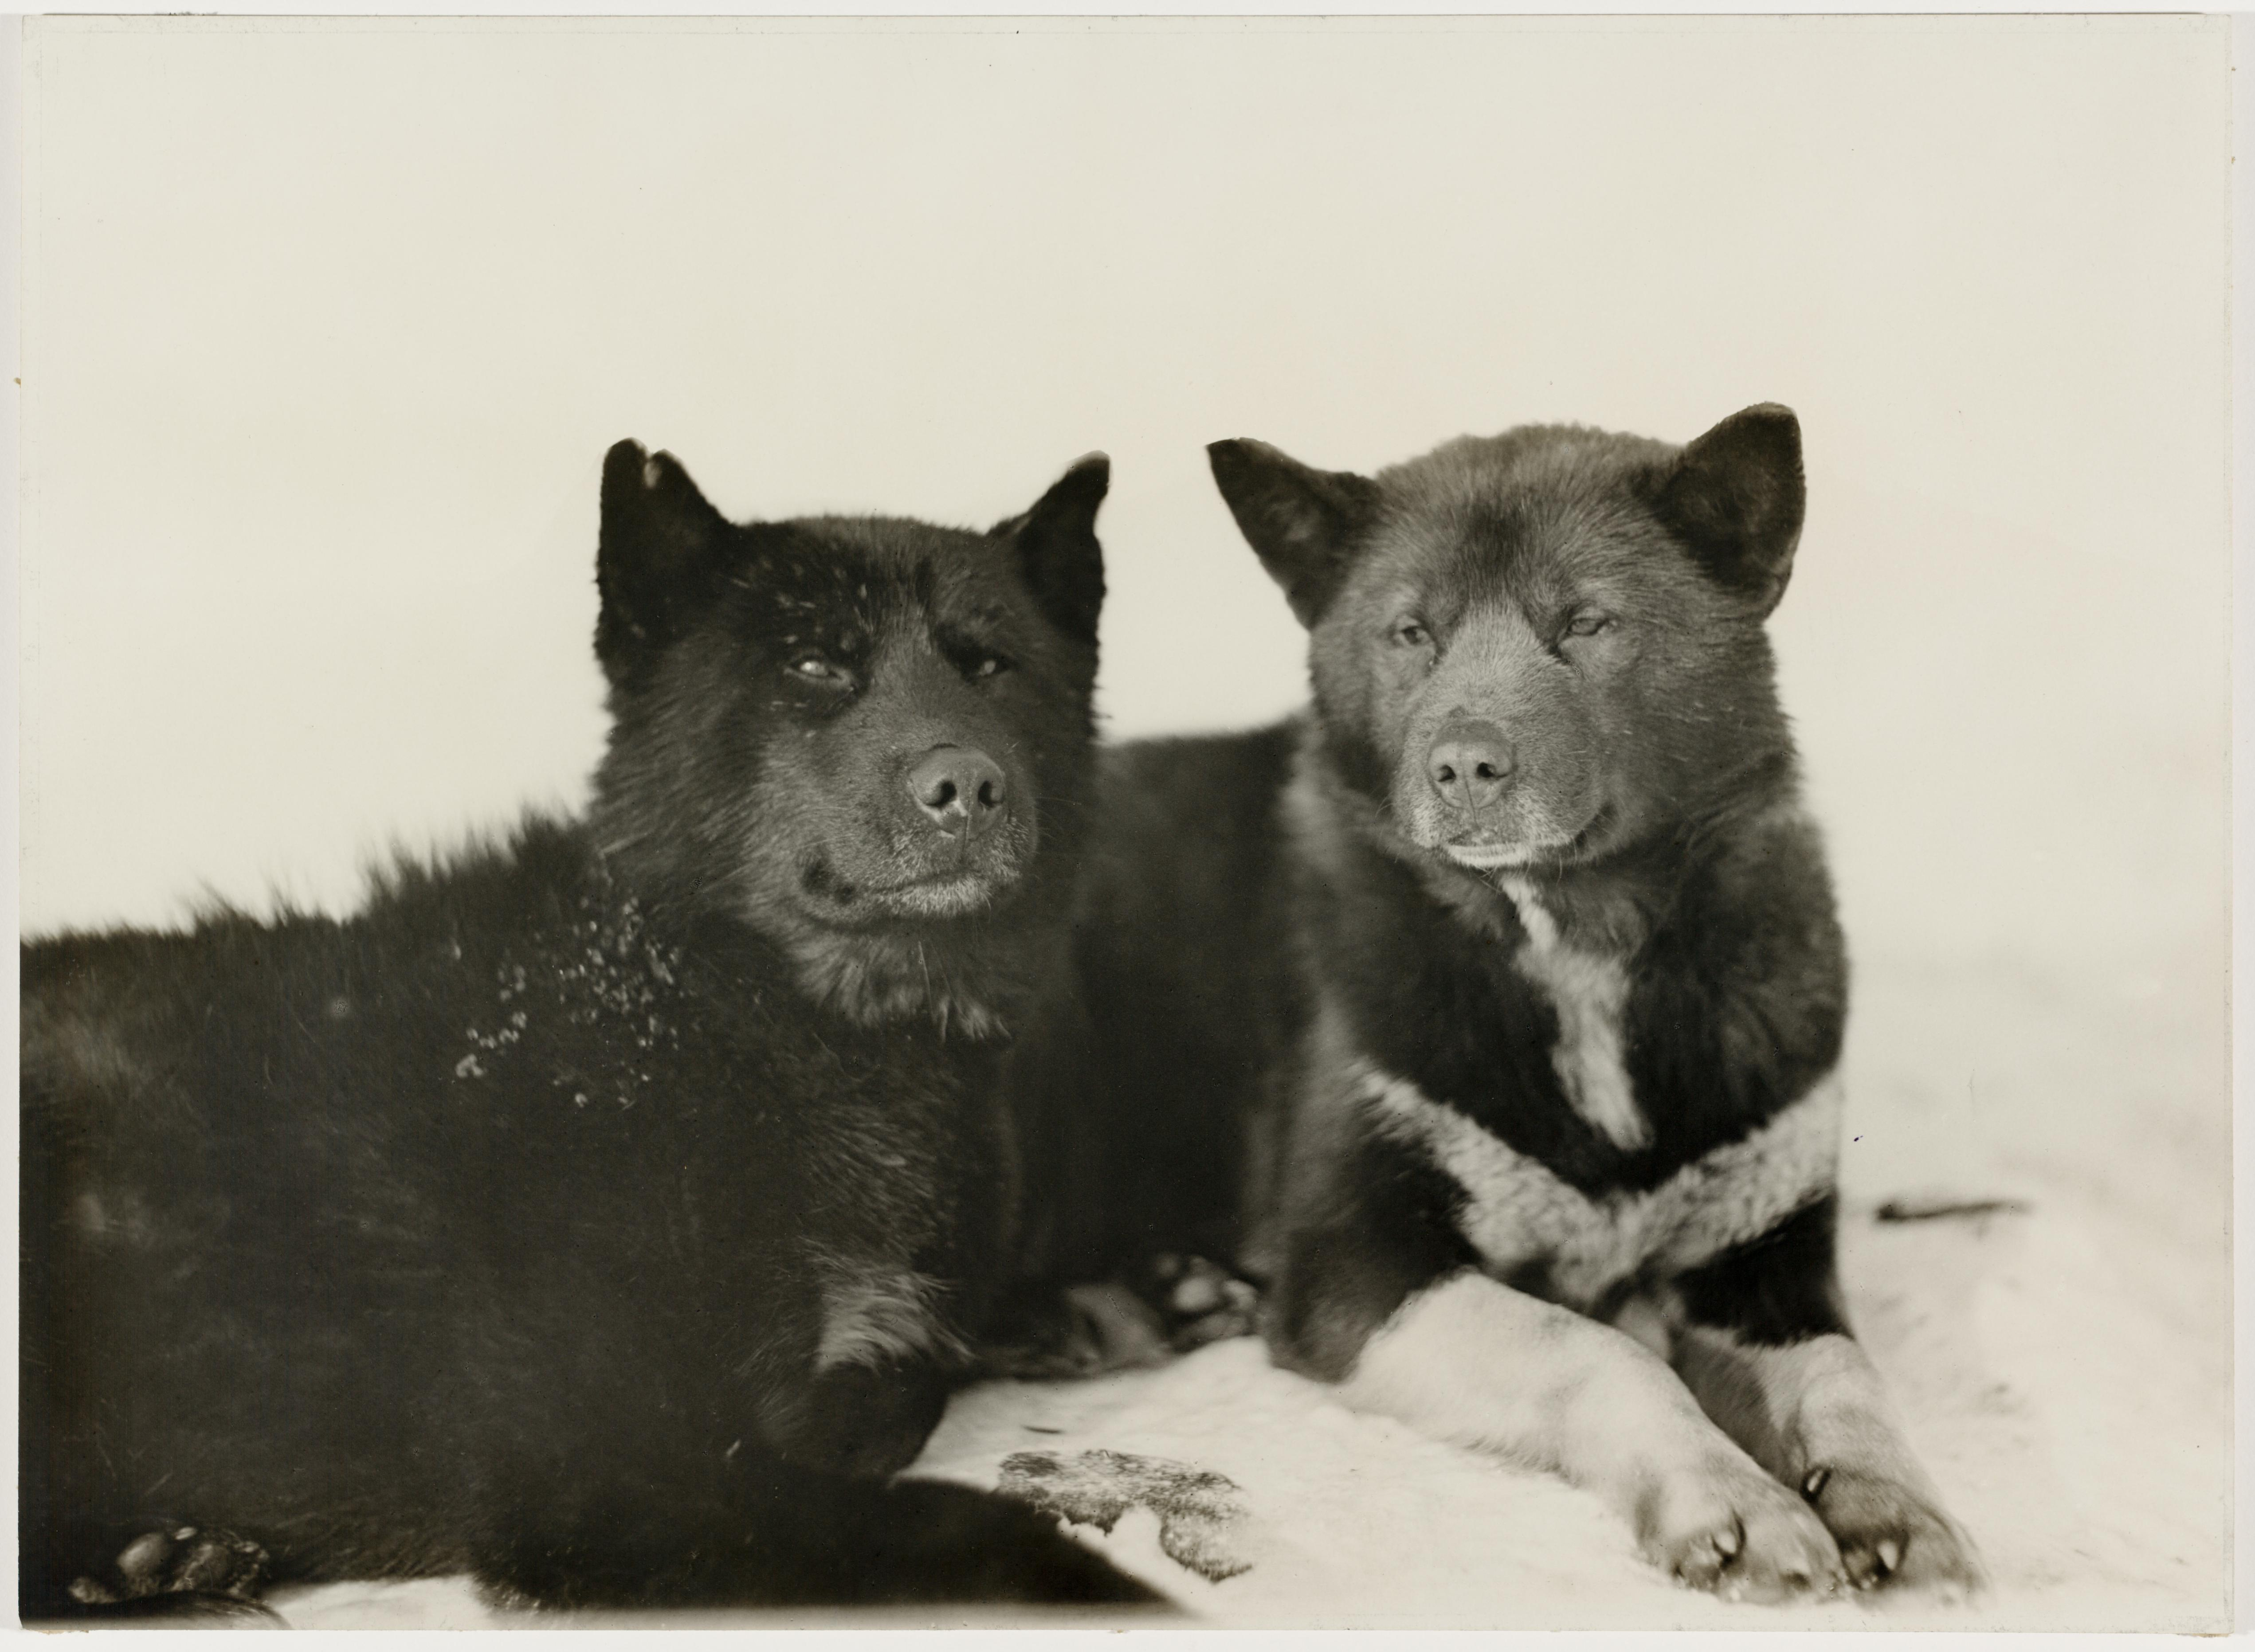 Greenland esquimaux dogs (Basilisk and Ginger-bitch), Antarctica, 1911-1914 / Frank Hurley